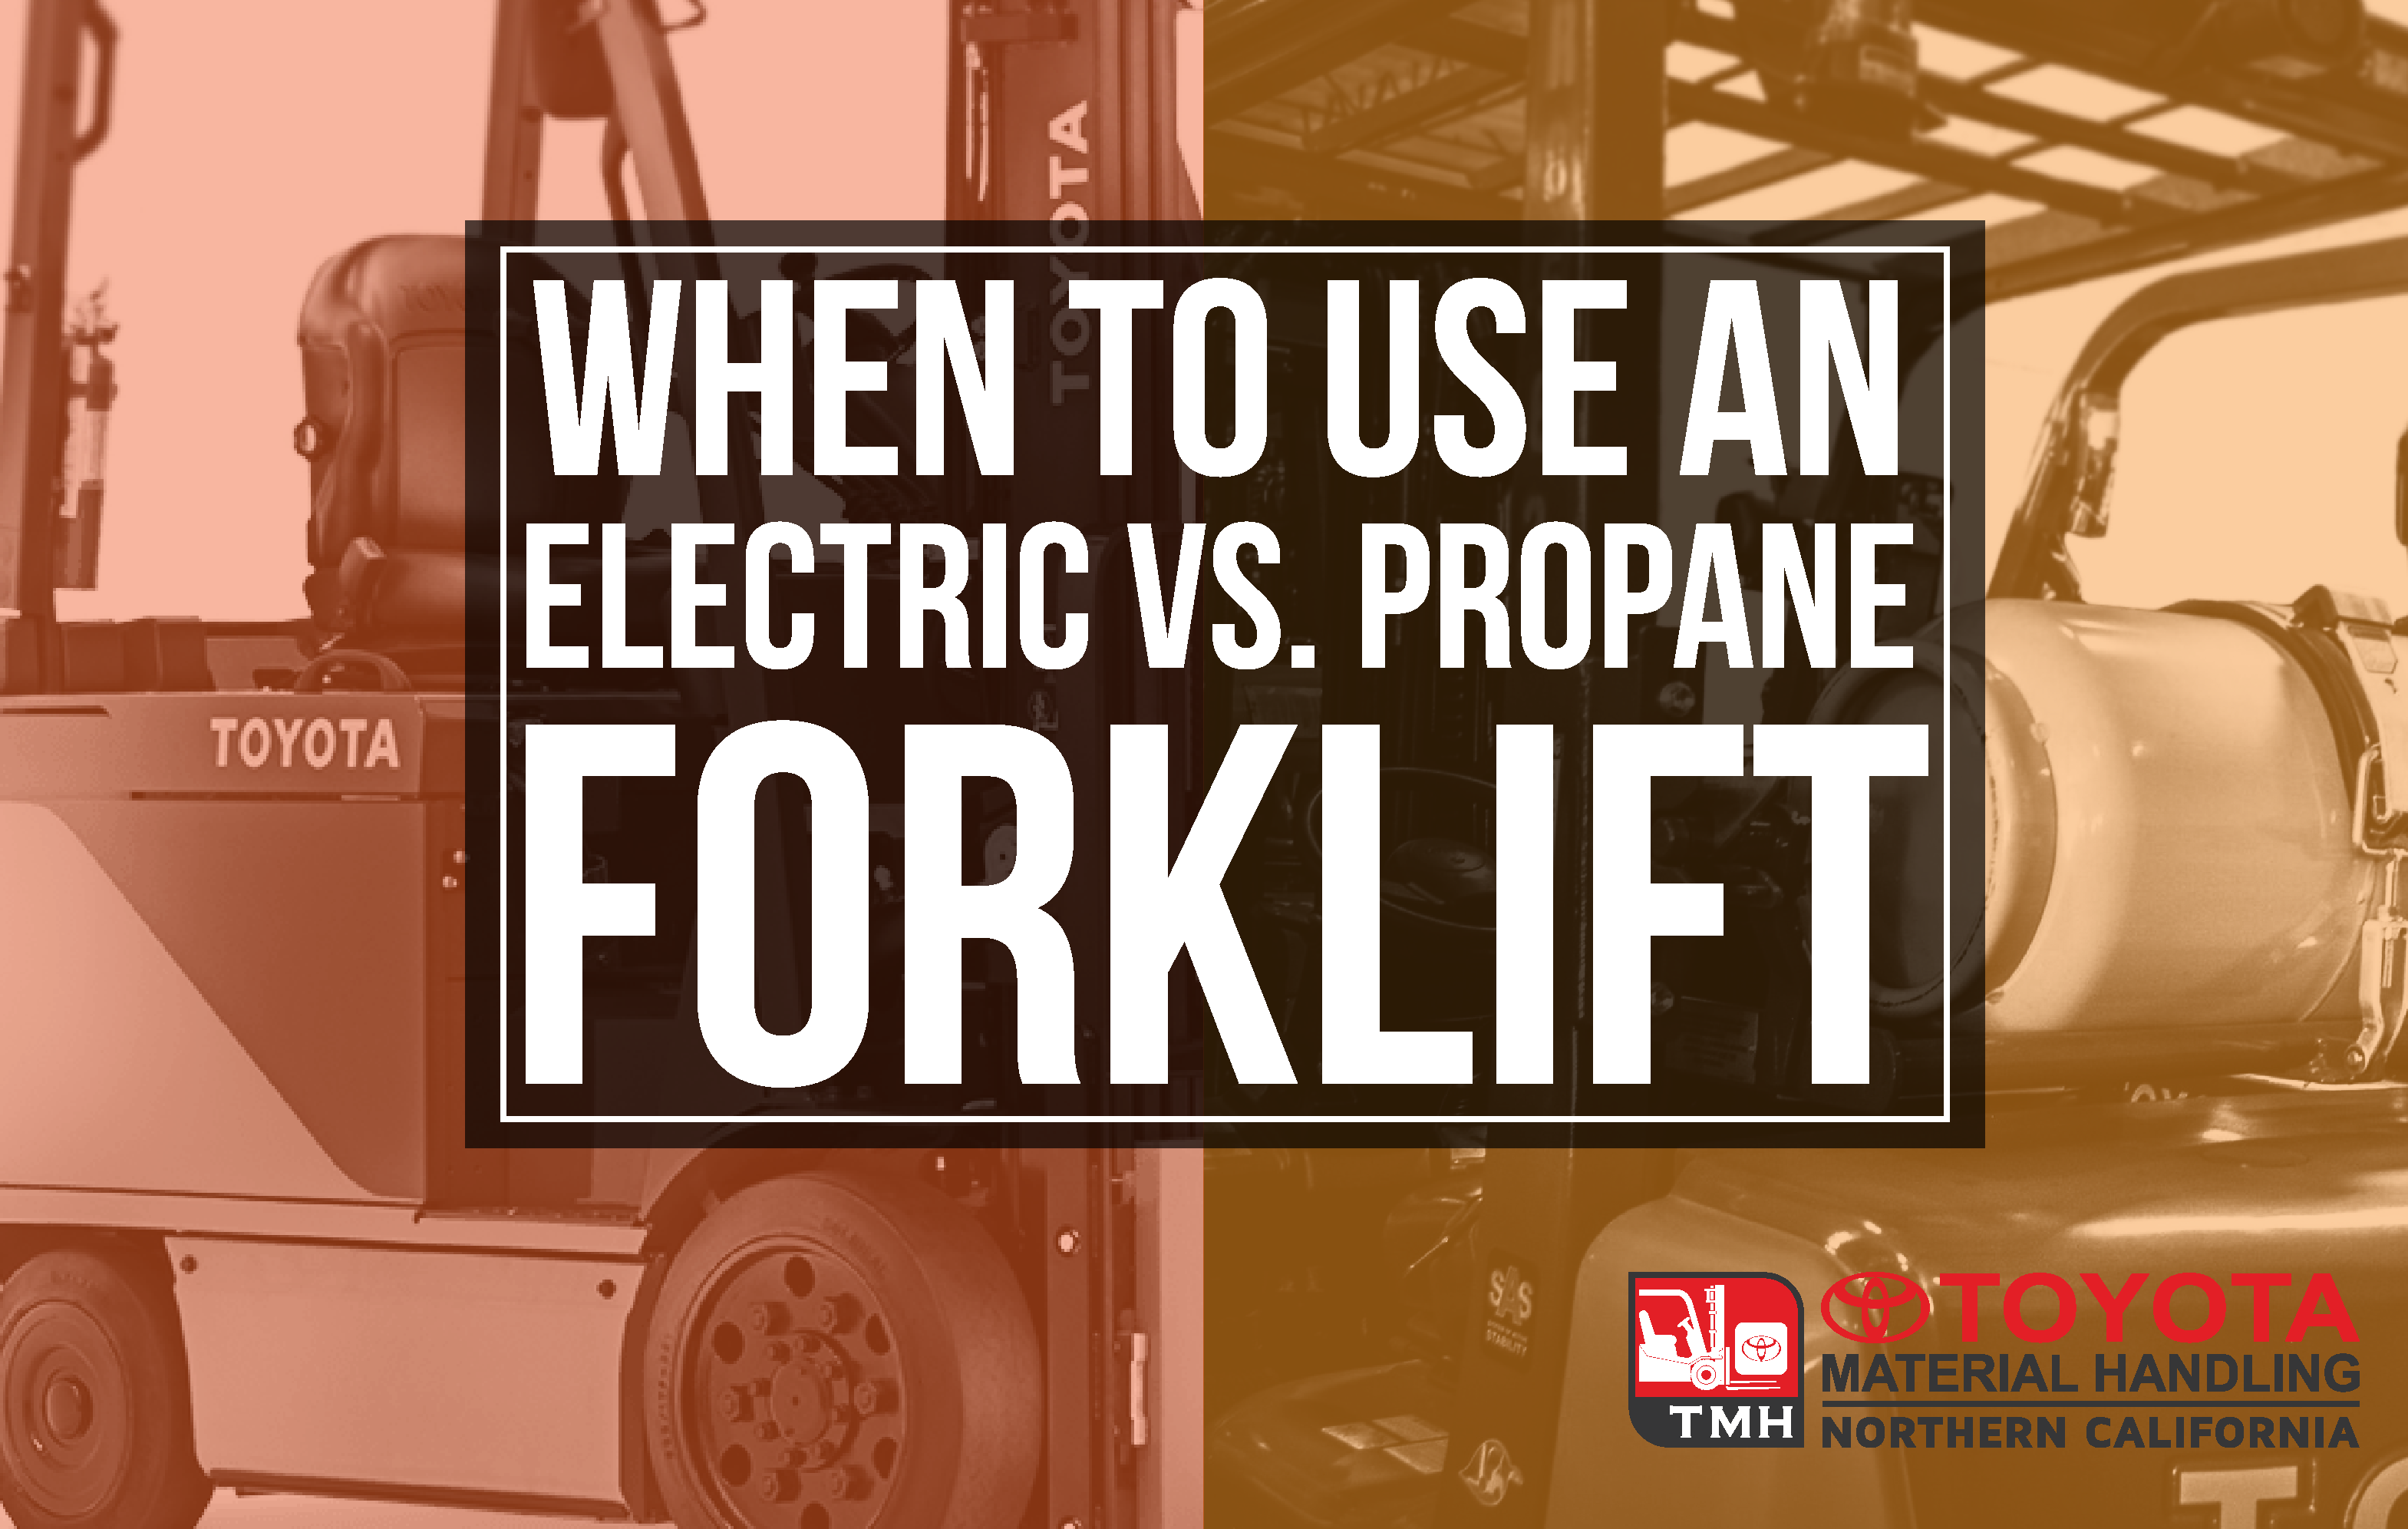 when to use an electric vs propane forklift